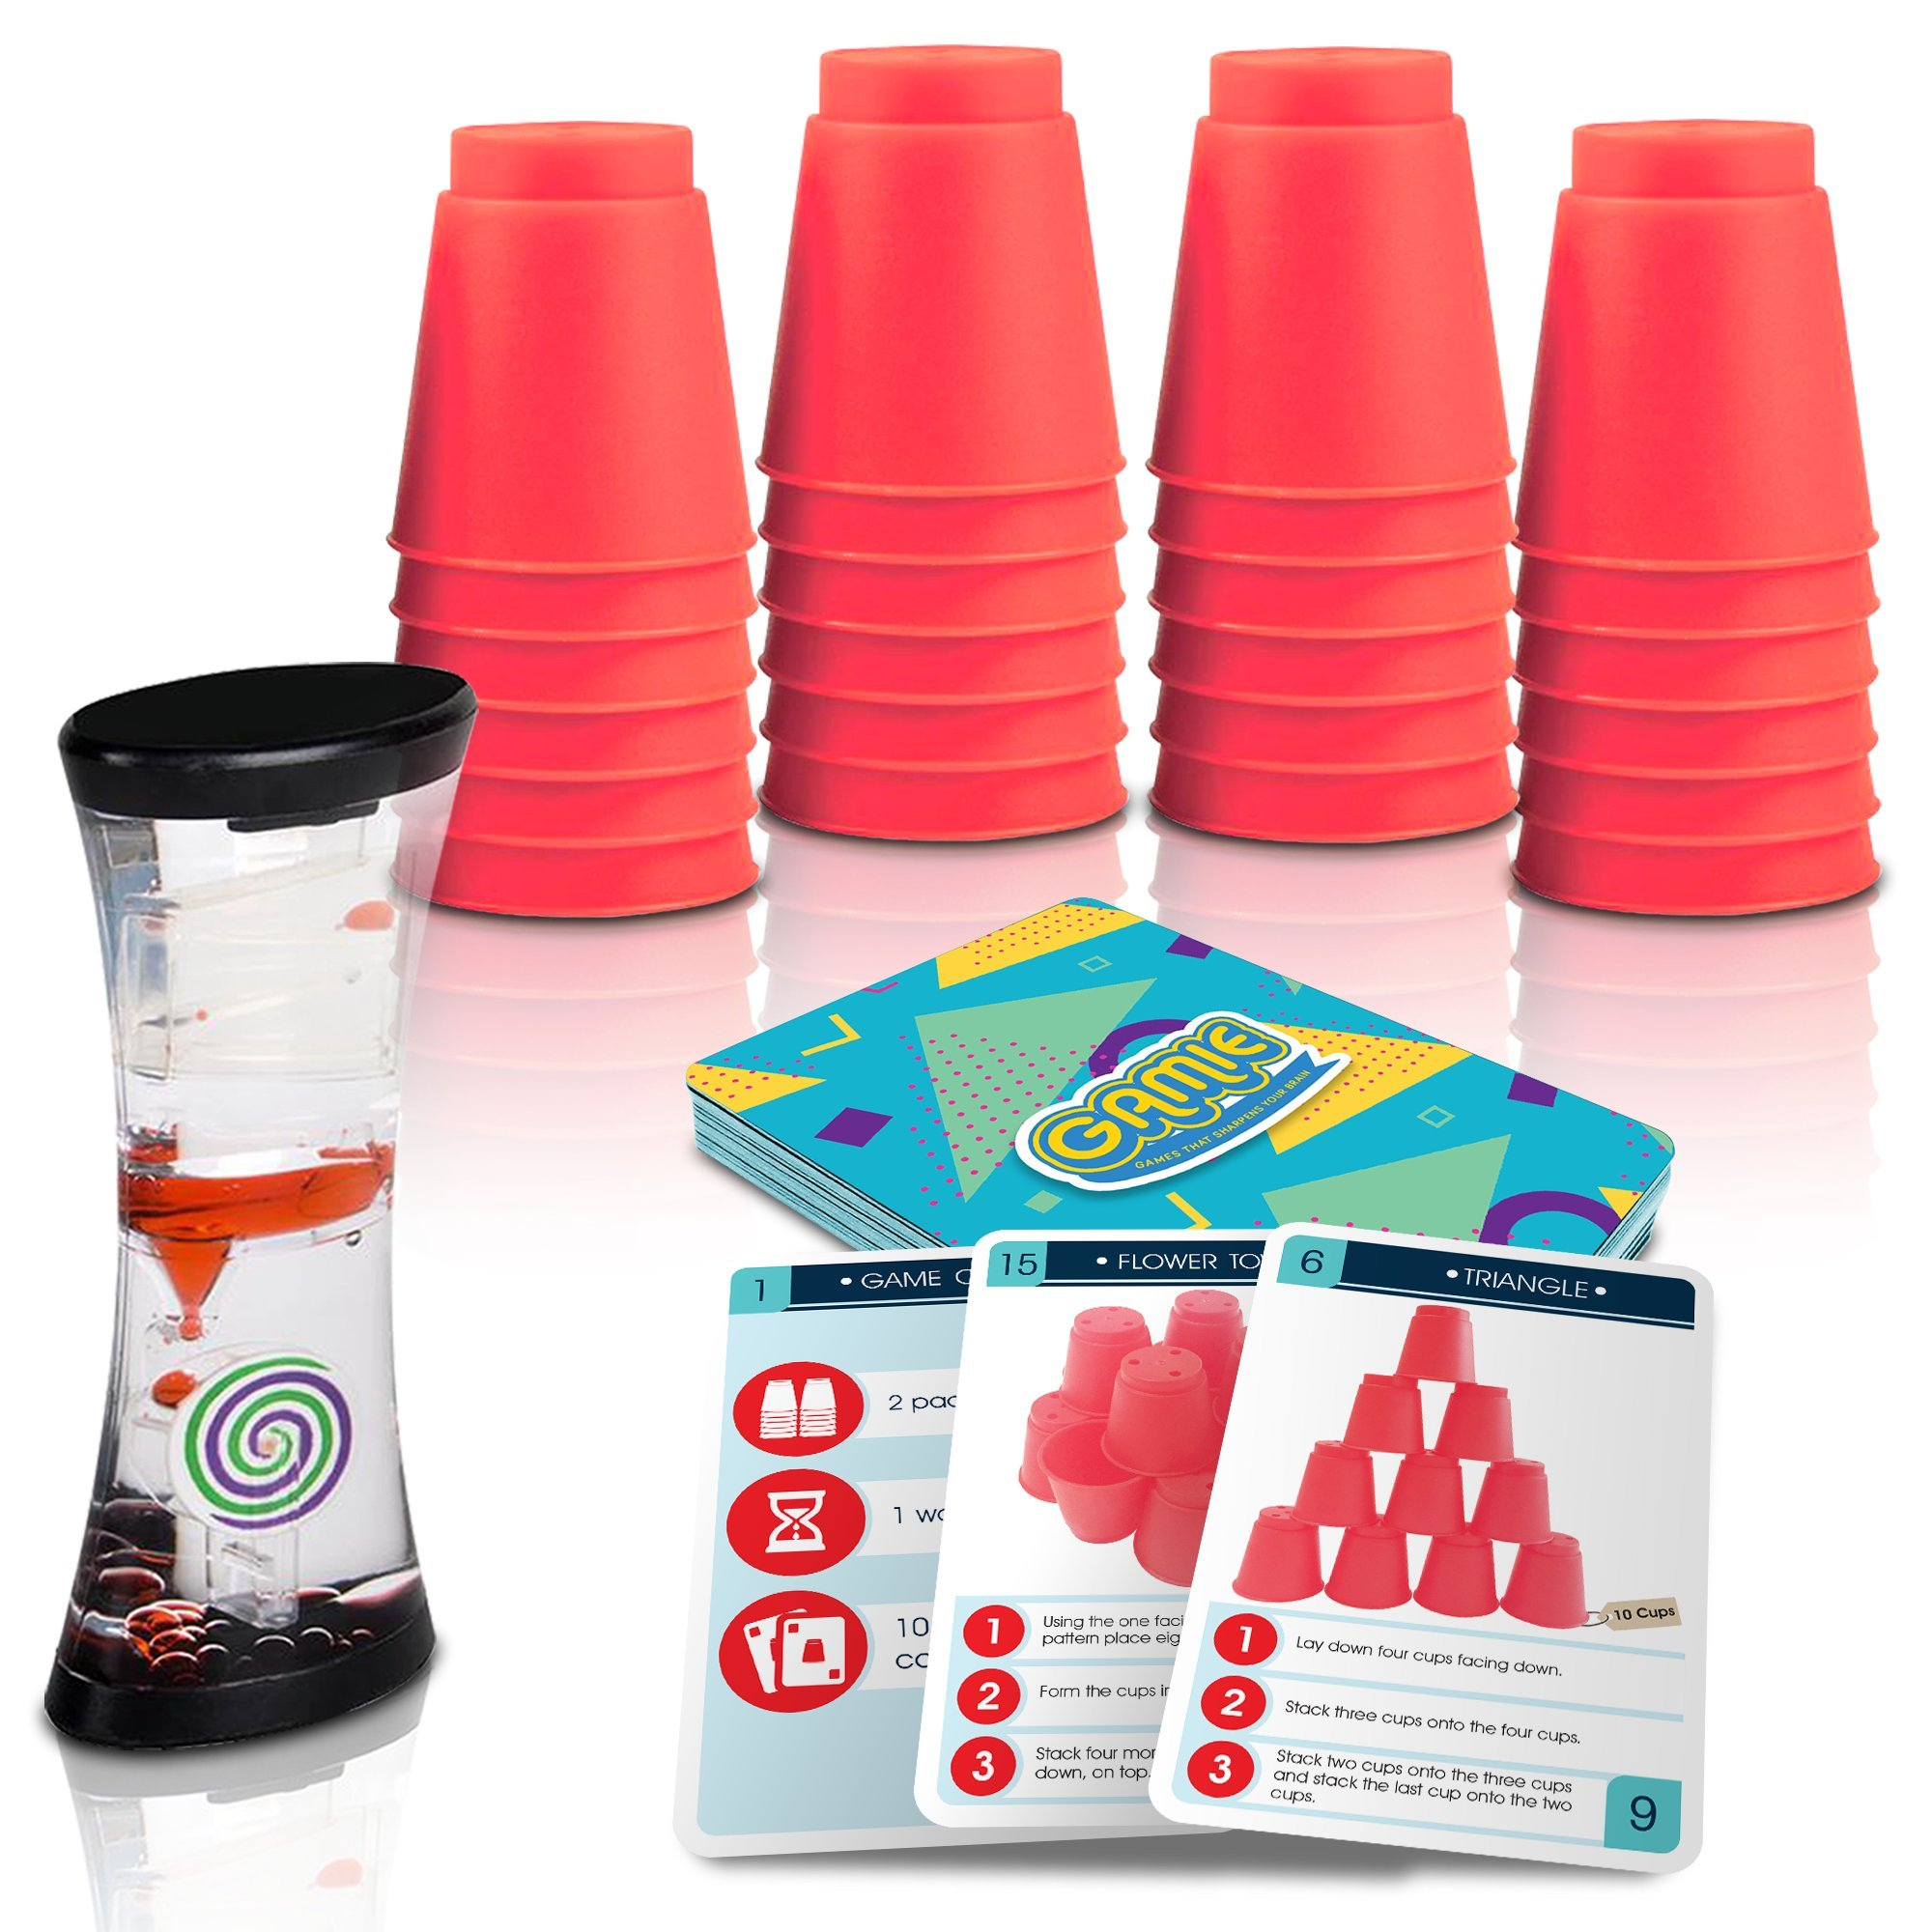 Gamie Stacking Cups Game w/ 18 Fun Challenges & Water Timer, 24 Stacking Cups, Sturdy Plastic, Classic Quick Stacking Cup Game for Kids, Amazing Family Time (Red)